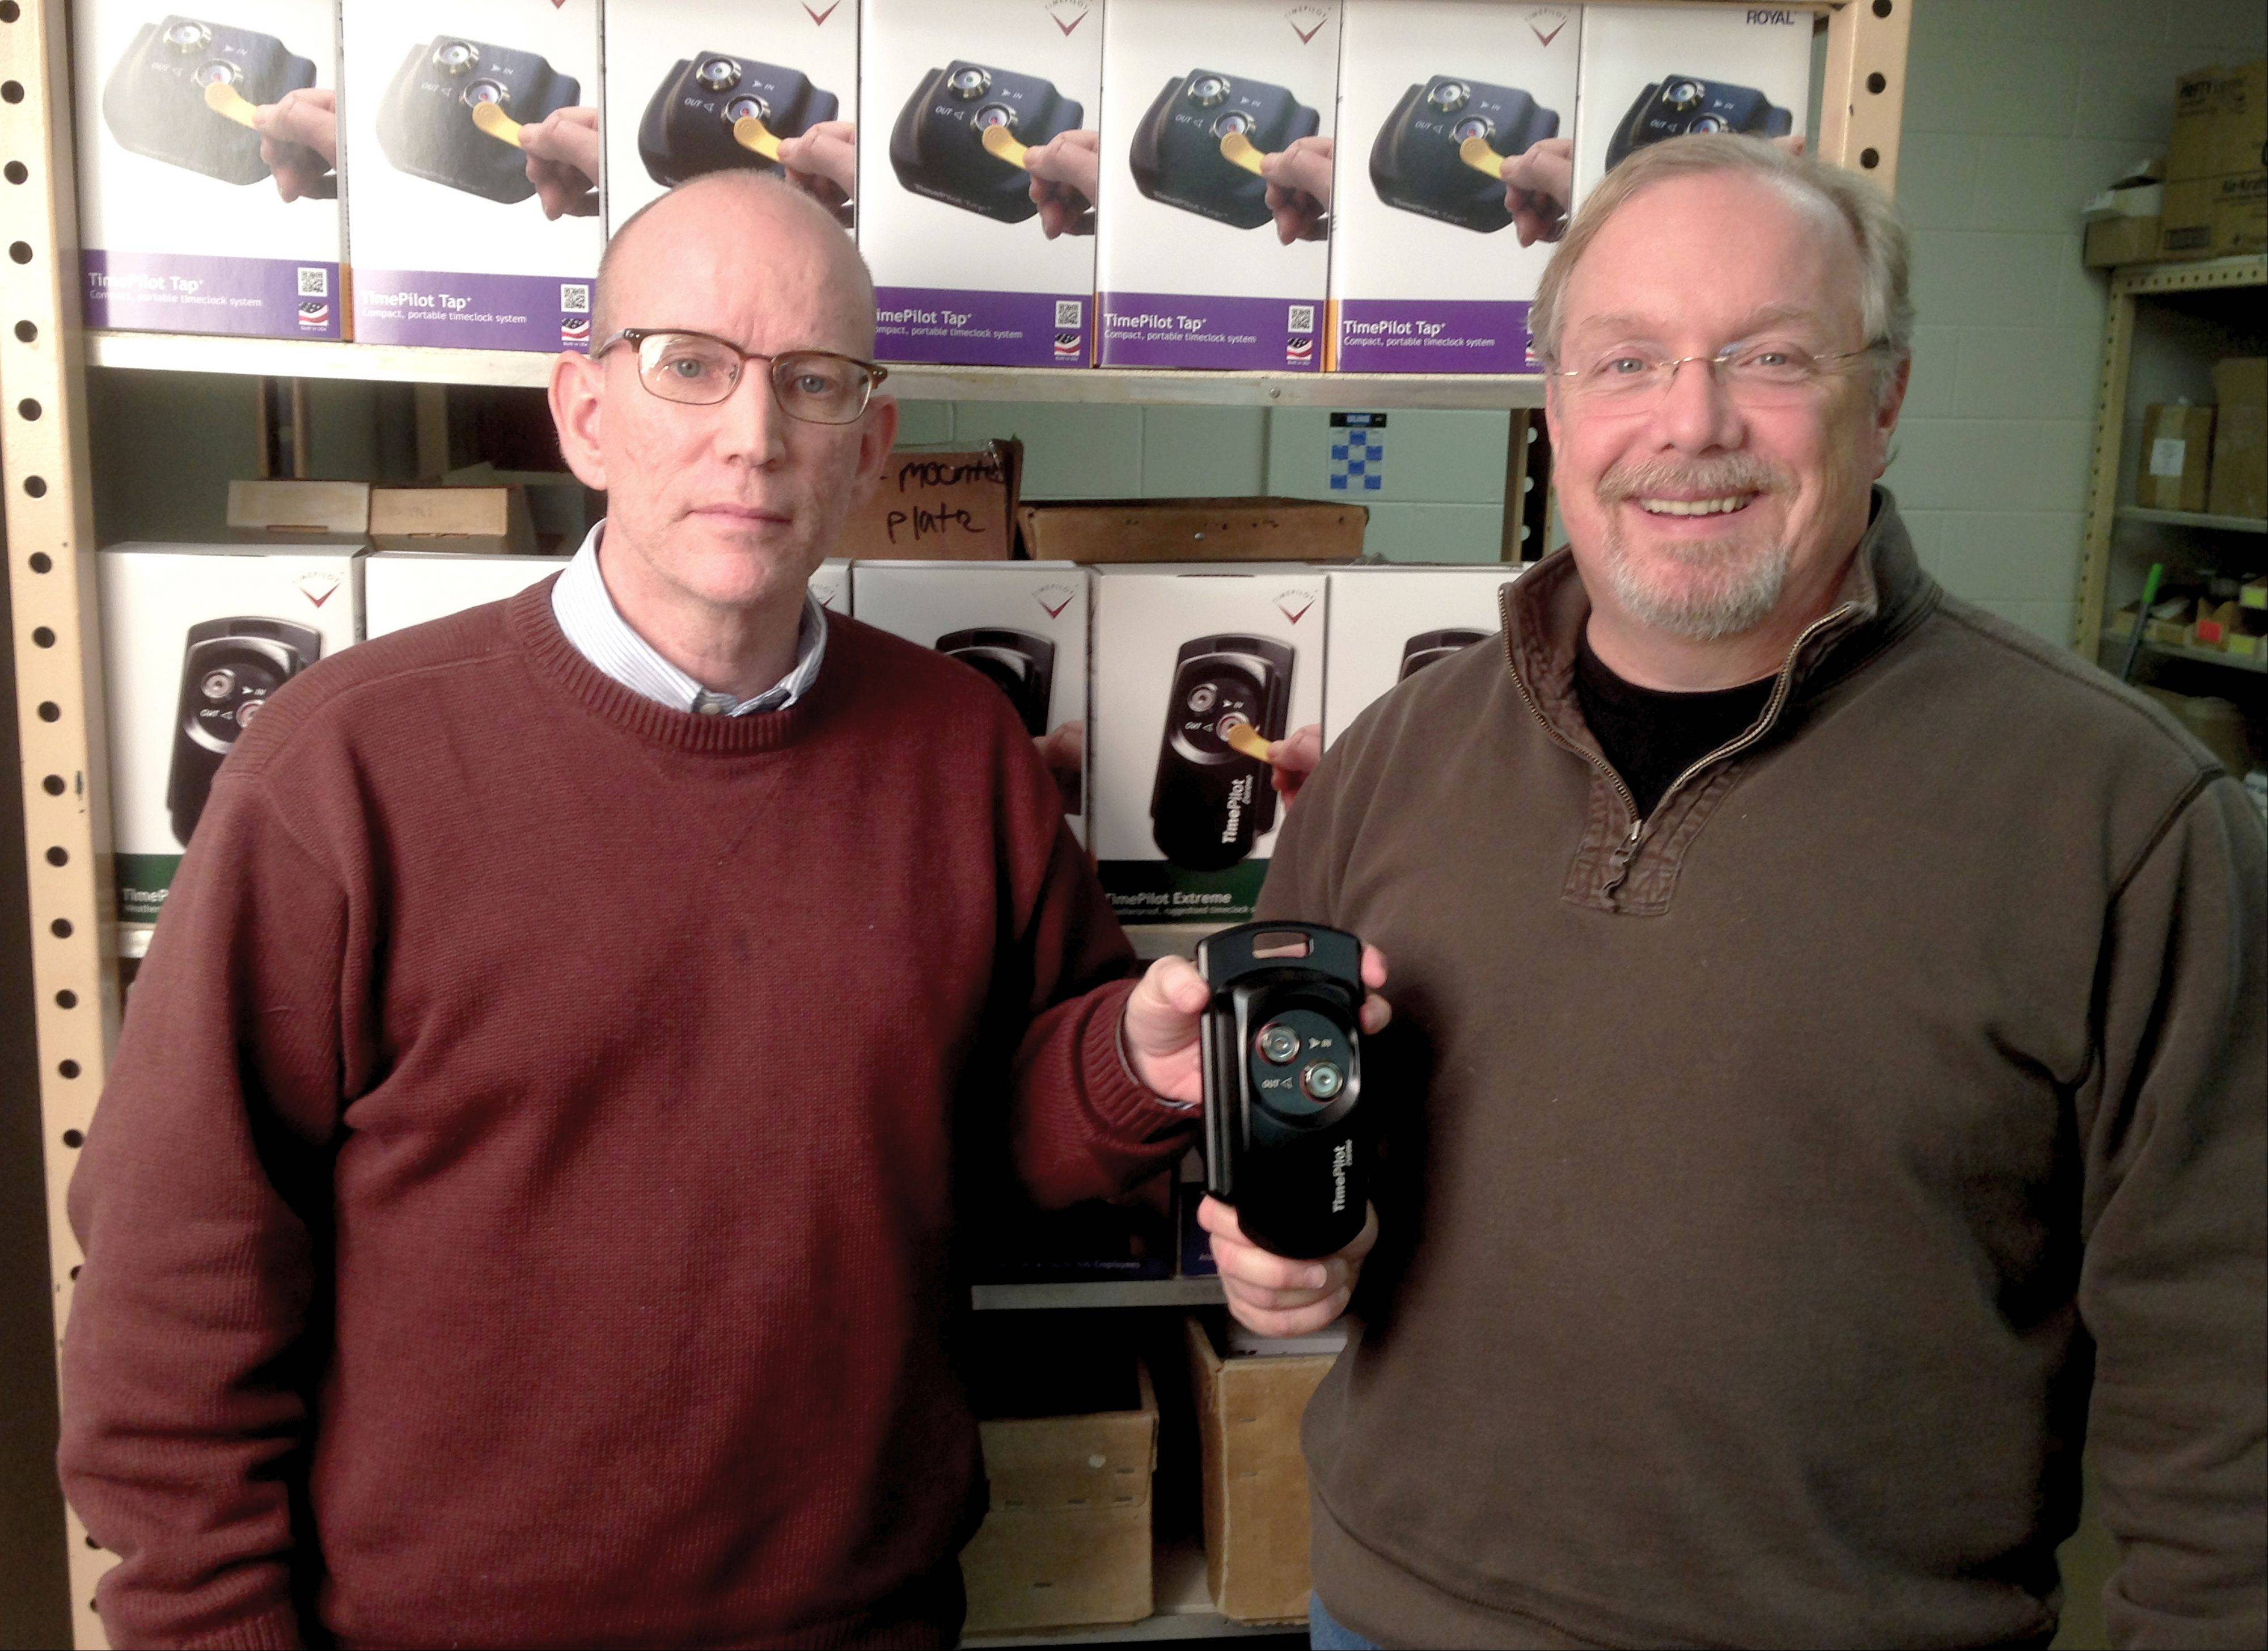 Doug Marsh, TimePilot CEO at left, and Mike Hanlon, TimePilot design director, hold the TimePilot Extreme, the basis for the company�s Kickstarter Project called Extreme Blue. They co-founded the company in 2001.